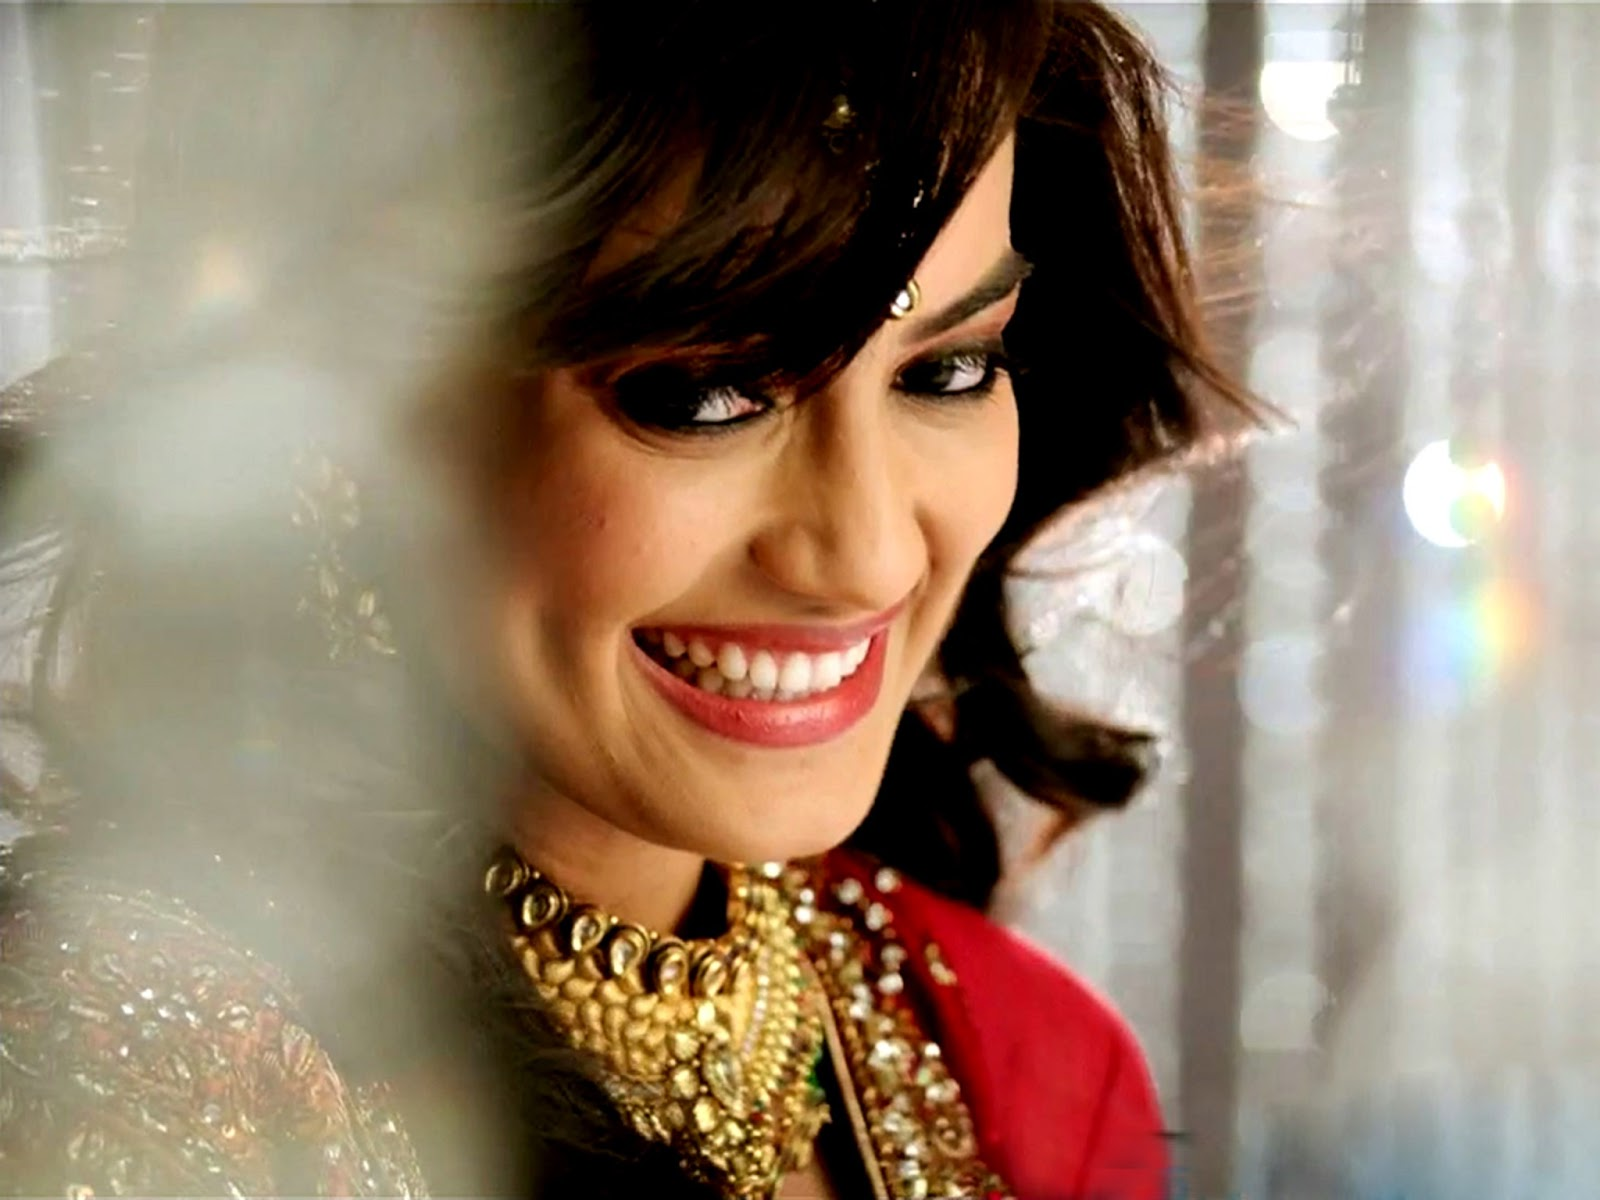 I Love You Jyoti Wallpaper Hd : Surbhi Jyoti HD Wallpaper - all 4u wallpaper